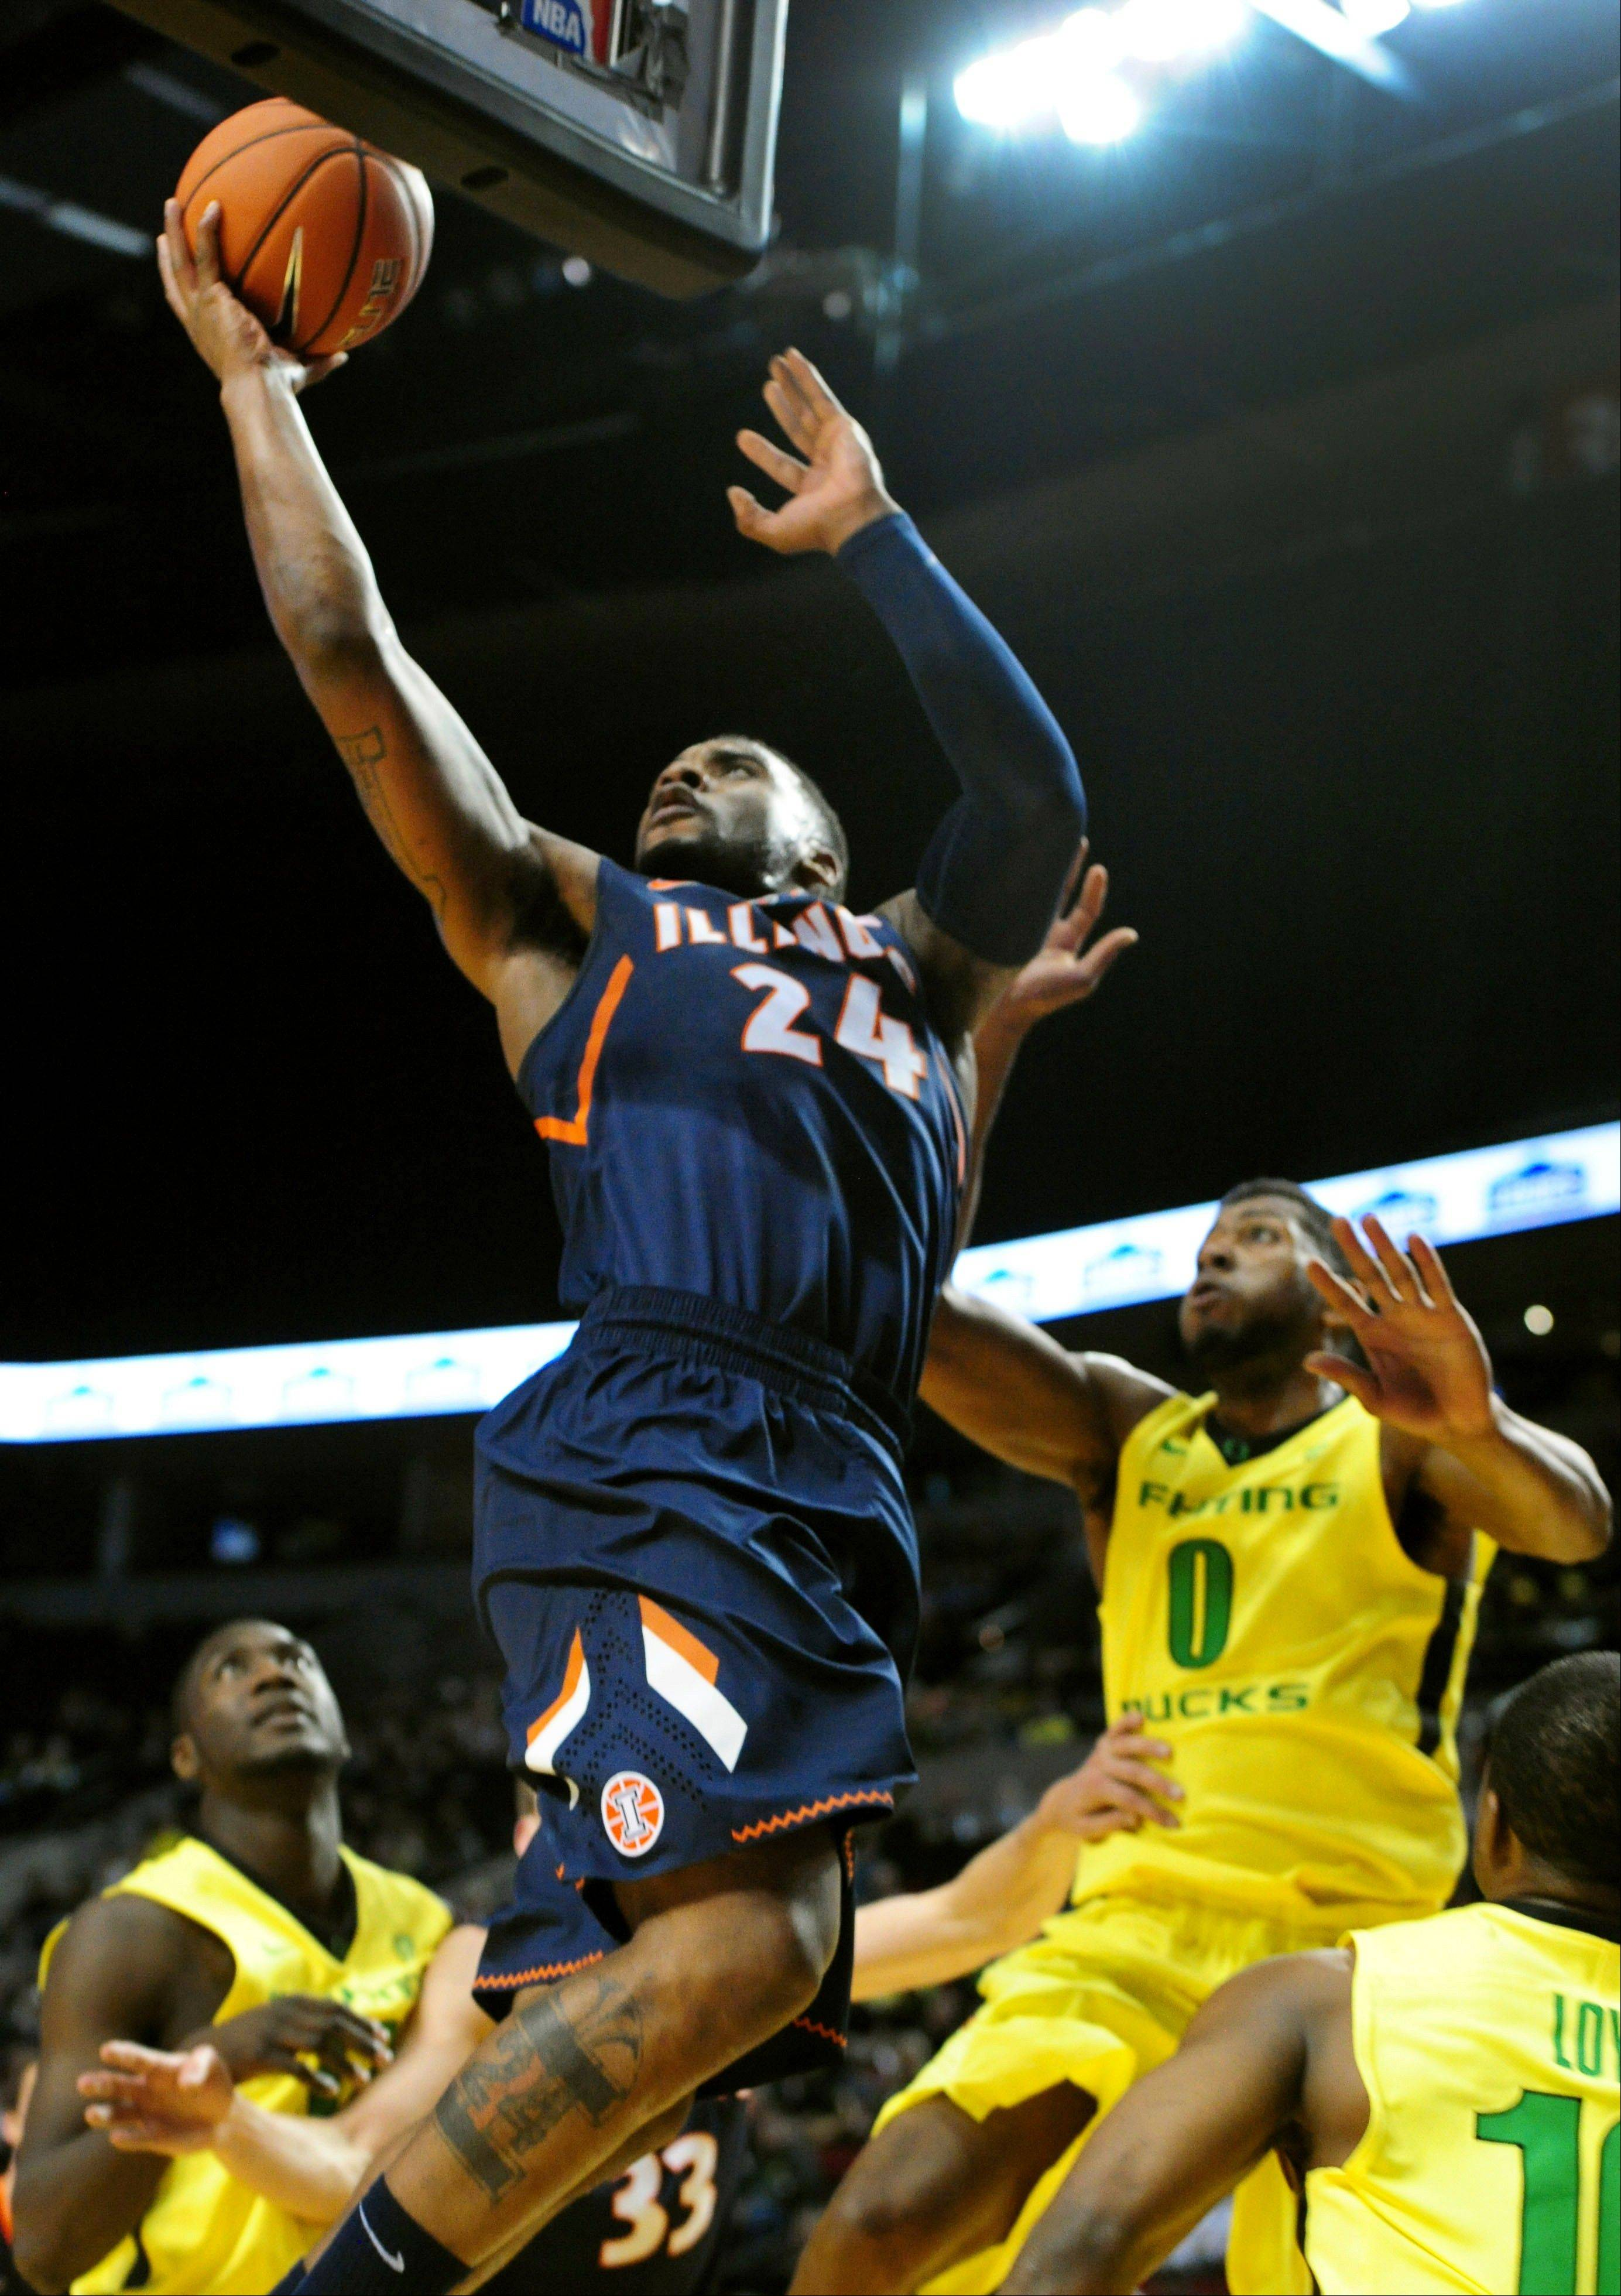 Illinois guard Rayvonte Rice (24) drives to the basket on Oregon guard Mike Moser during the first half of an NCAA college basketball game in Portland, Or., Saturday, Dec. 14, 2013.